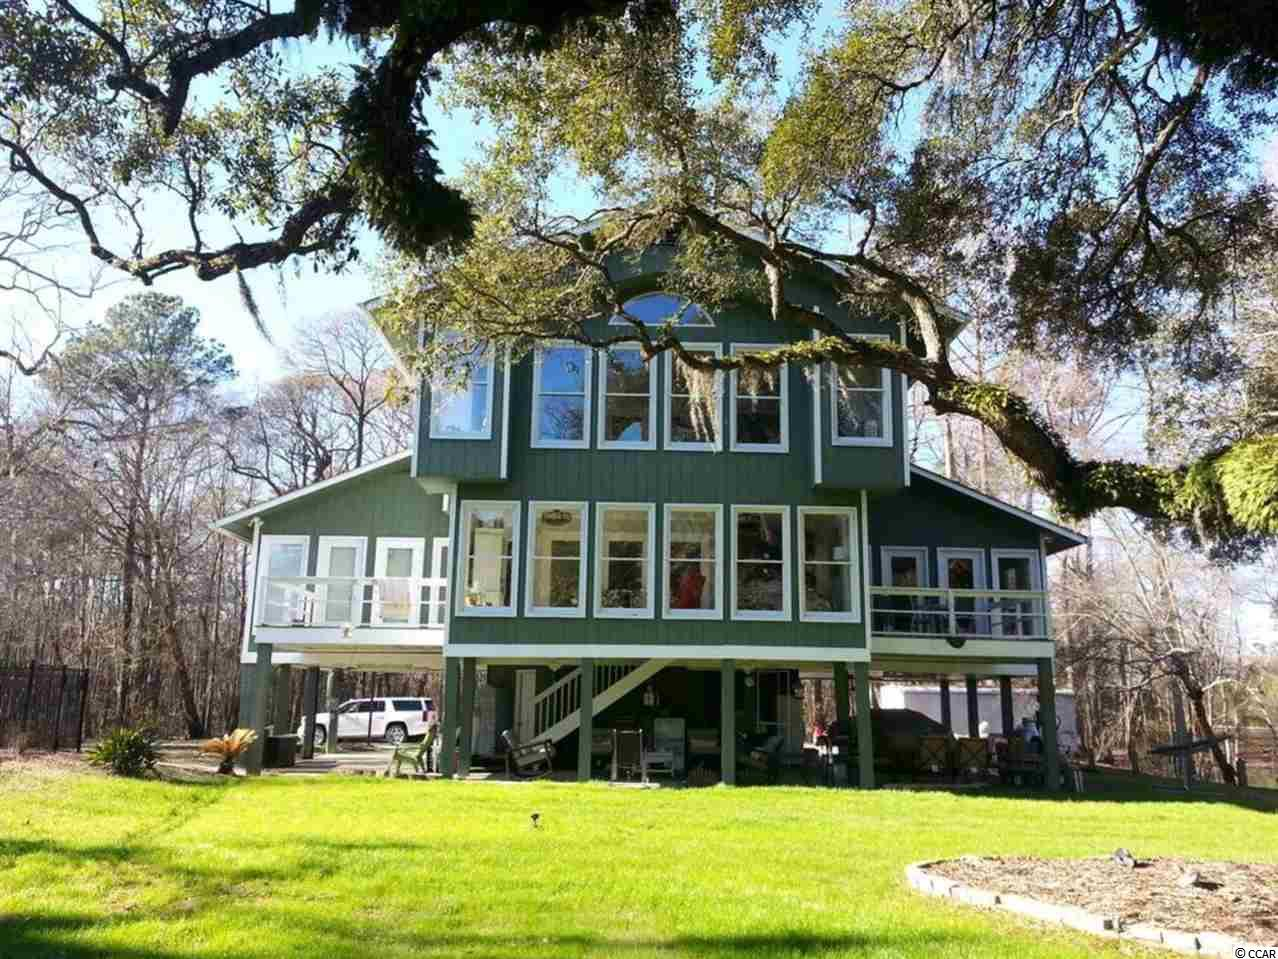 "**BUYER BONUS: CLOSING COST ASSISTANCE FOR USING PREFERRED ATTORNEY OR CASH BACK AT CLOSING!!**As you enter the property thru the stacked stone gated entrance, you're welcomed by this beautiful 3 BR (easily converted to a 4 or 5 BR), 4.5 BA river front home on the Waccamaw River with private canal and in-ground plaster pool. This home has it all - sitting on over an acre of land and situated under beautiful hardwood trees, including a magnificent 300+ year old Live Oak that is the focal point of the back yard, all in a very private location yet convenient to everything! Minutes from Downtown Conway, Carolina Forest (with the new International Drive connector open just a few miles away), close access to 501, 22 and 31, you cannot beat the privacy yet convenience to most areas! This custom home has an open layout with the entire rear consisting of glass doors and windows, along with decks off the dining area and Master BR, to capitalize on the beautiful setting. The completely remodeled interior (2014) boasts dark wide plank solid oak floors, custom staircase, custom lighting and ceiling fans, ceramic tile (kitchen, Carolina room, and 3 full baths), upgraded higher end stainless steel appliances (brand new gas cook top 2019), vaulted tongue and groove wood ceiling in upstairs bonus room, an exposed 3 story brick fireplace with custom mantle, and a huge bonus room upstairs that could be converted into an additional bedroom or two if needed. There's lots of storage inside and out, including clever hidden storage rooms accessed thru both upstairs bedroom closets. The concrete driveway has been expanded, creating lots of parking space for your ""toys"" or room for your guests coming to admire your new oasis. Brand new roof (2019) and new front steps (2019) with landing/side entry steps. This is the ultimate family home and is built for entertaining! The exterior living space boasts two floating docks on the river, a 220' lighted sea wall with stairs down to the canal for kayaking or swimming, a slide into the canal, rope swing into the river, and several sitting areas to enjoy the views. The in-ground pool is surrounded by brick pavers, and has a wet deck, therapy jets, slide and waterfall feature. The large side yard was recently fenced in if you have small children or pets. There is an outdoor kitchen area under the home with a built in fireplace/grill, sink area, and room for a fridge. Also underneath the home is an additional storage room with W/D hookups, a full bathroom, and an enclosed garage along with carport areas on both sides. Don't delay! Come see for yourself and make this your new luxury home on the water!"